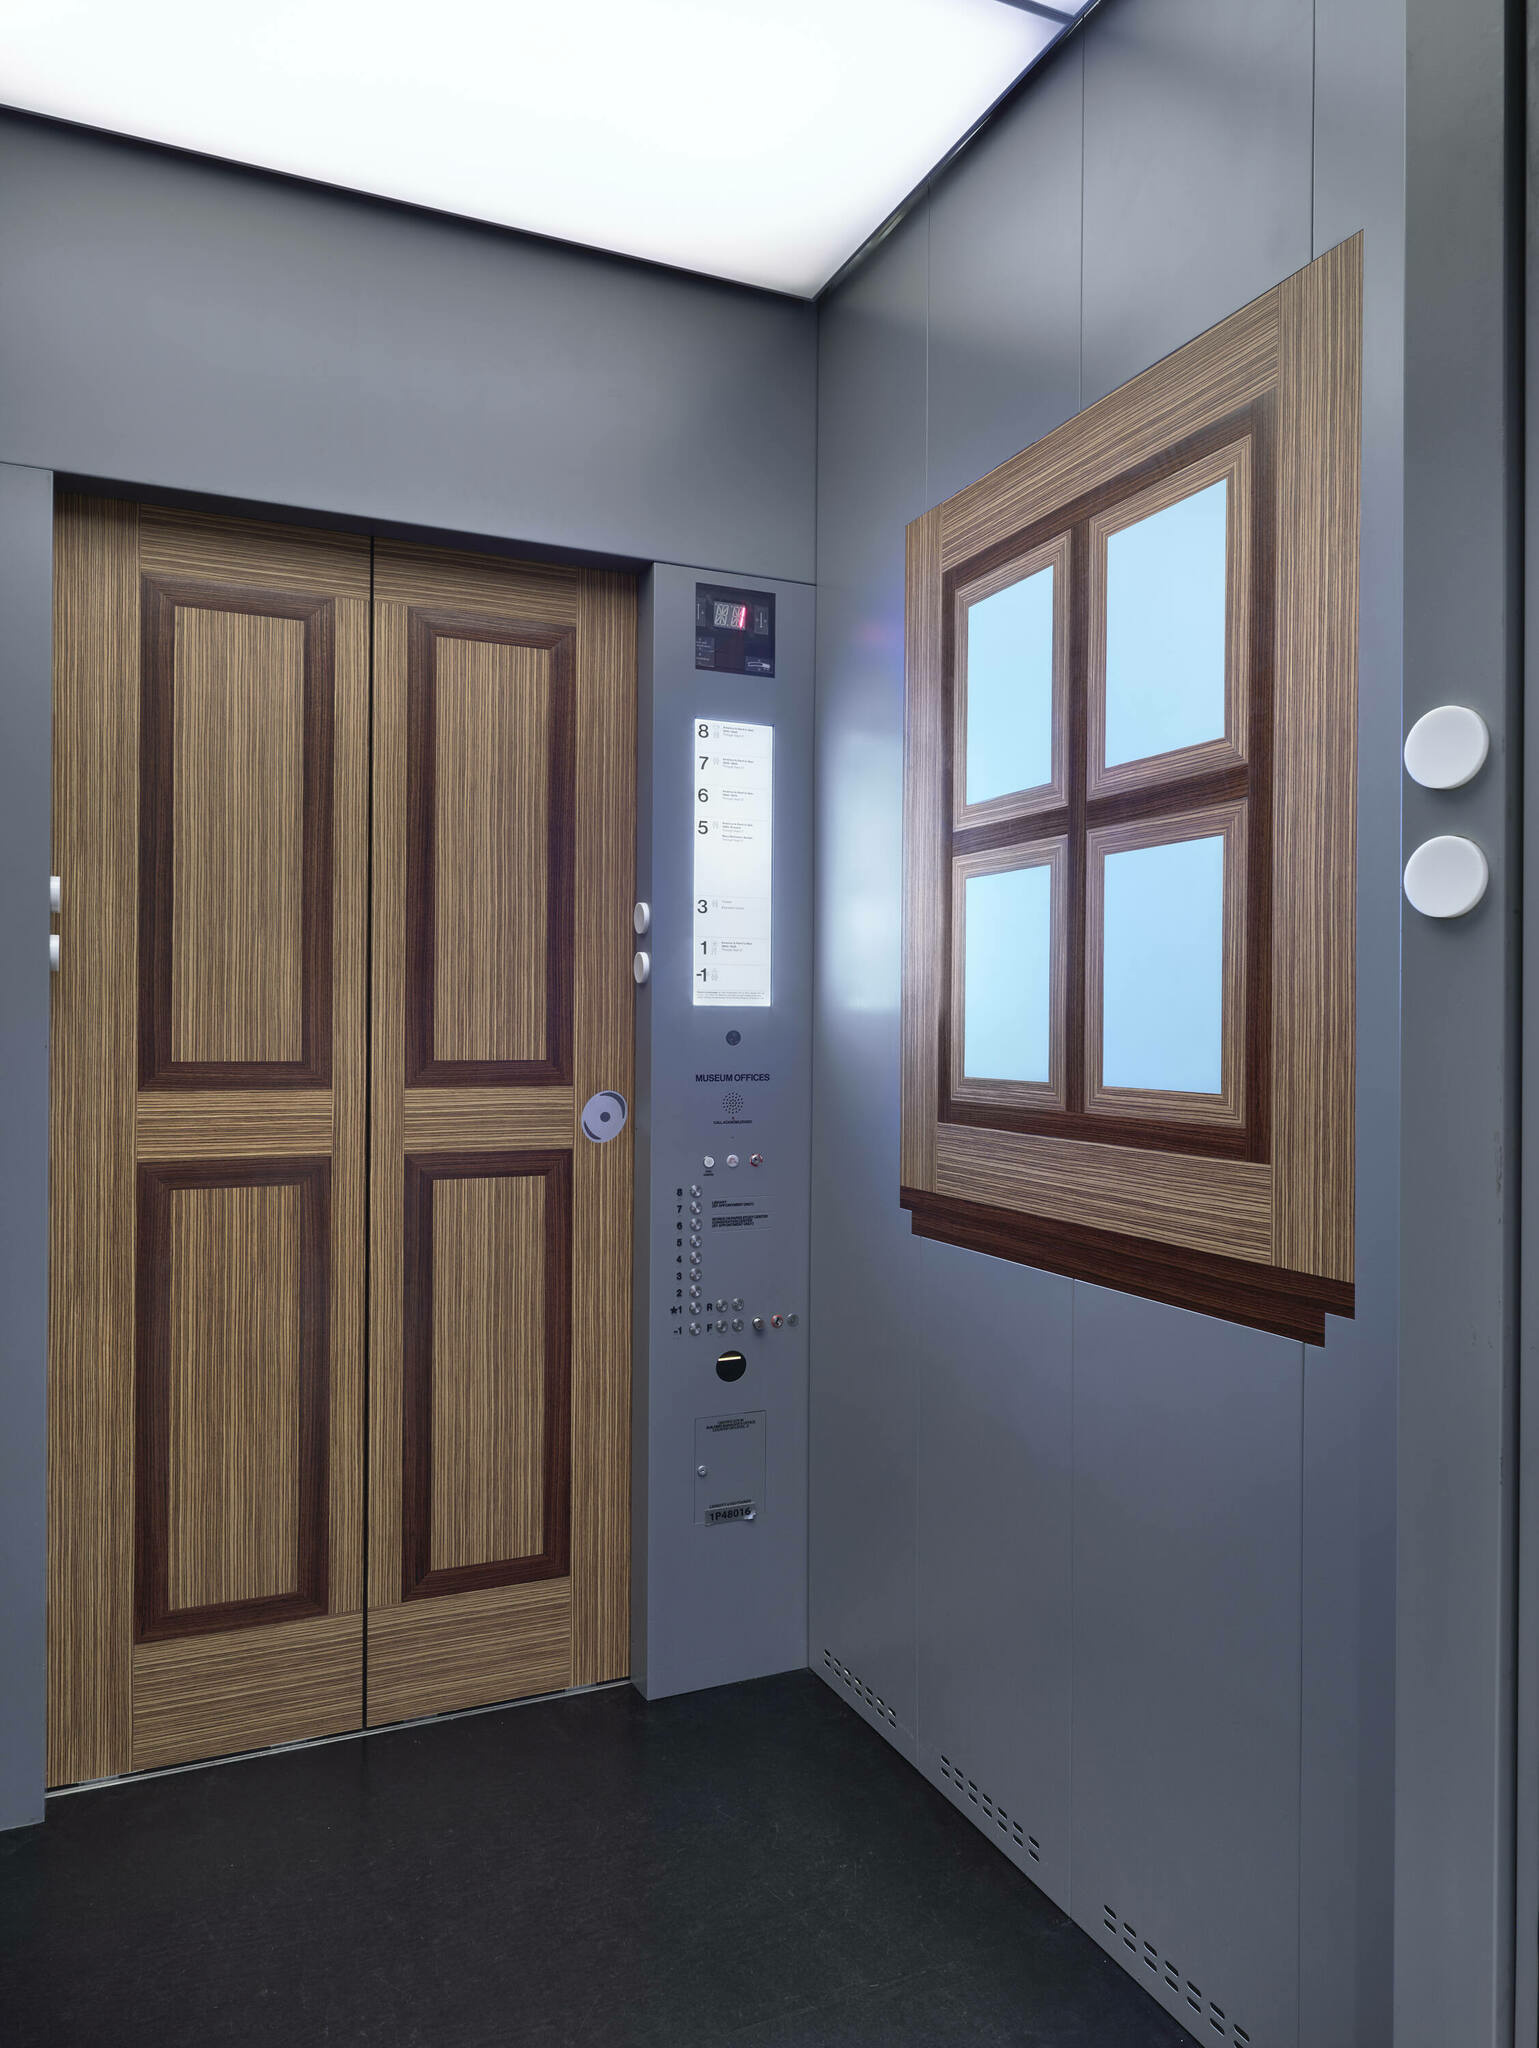 An elevator's gray interior with wall designs resembling wooden double doors and a wood-frame window